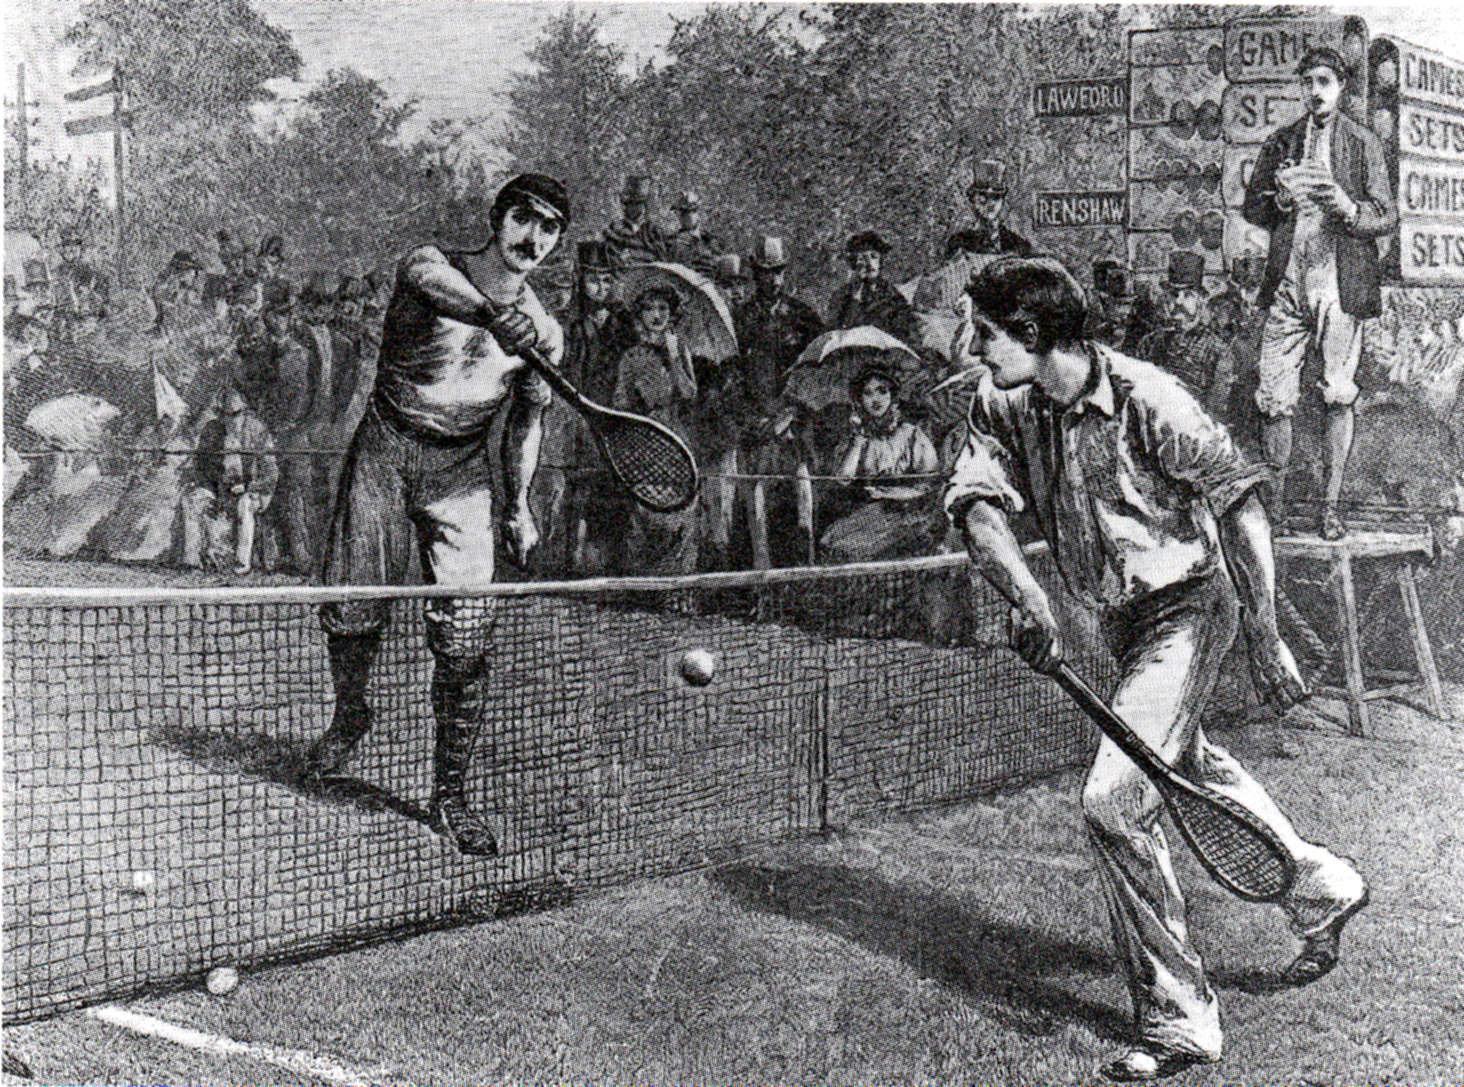 File Lawford vs Renshaw Wimbledon in the 1880s Wikimedia